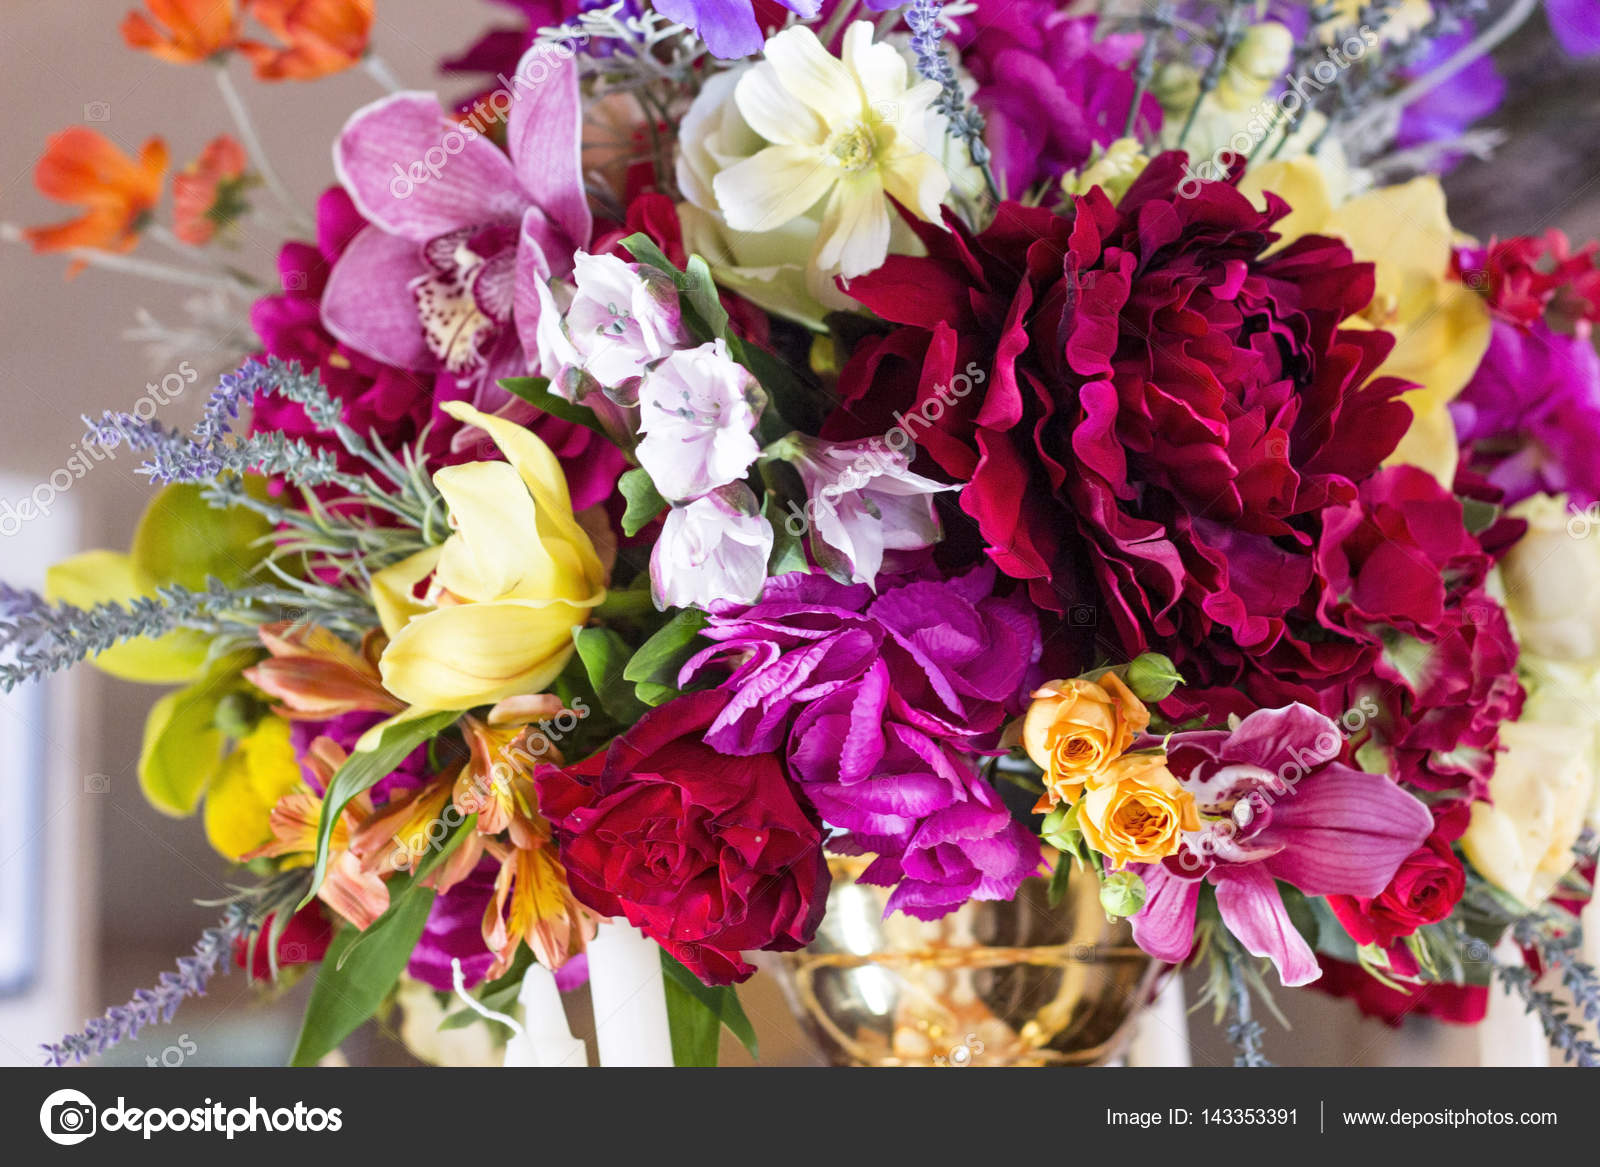 Beautiful bouquet of different flowers stock photo tae 143353391 beautiful bouquet made of different flowers rose lily orchid wildflowers photo by tae izmirmasajfo Gallery